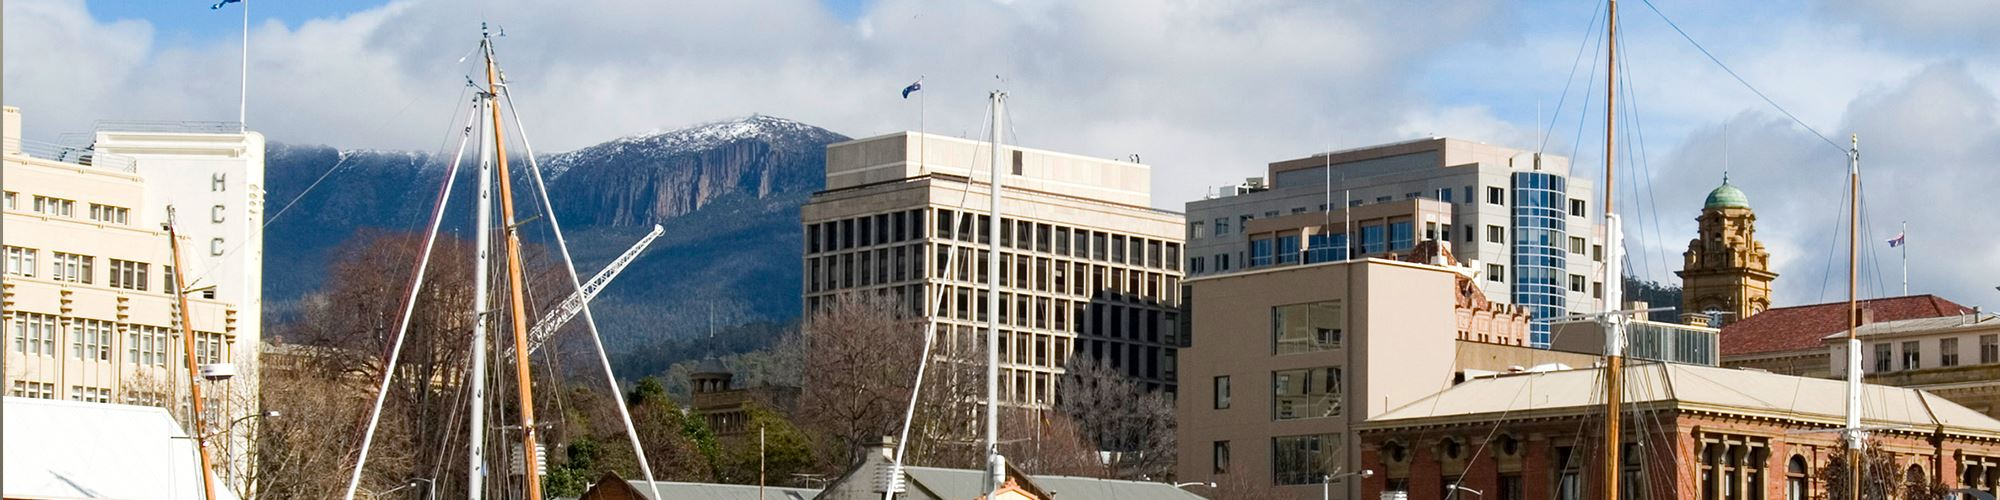 banner-reserve-bank-building-hobart-office-2.jpg